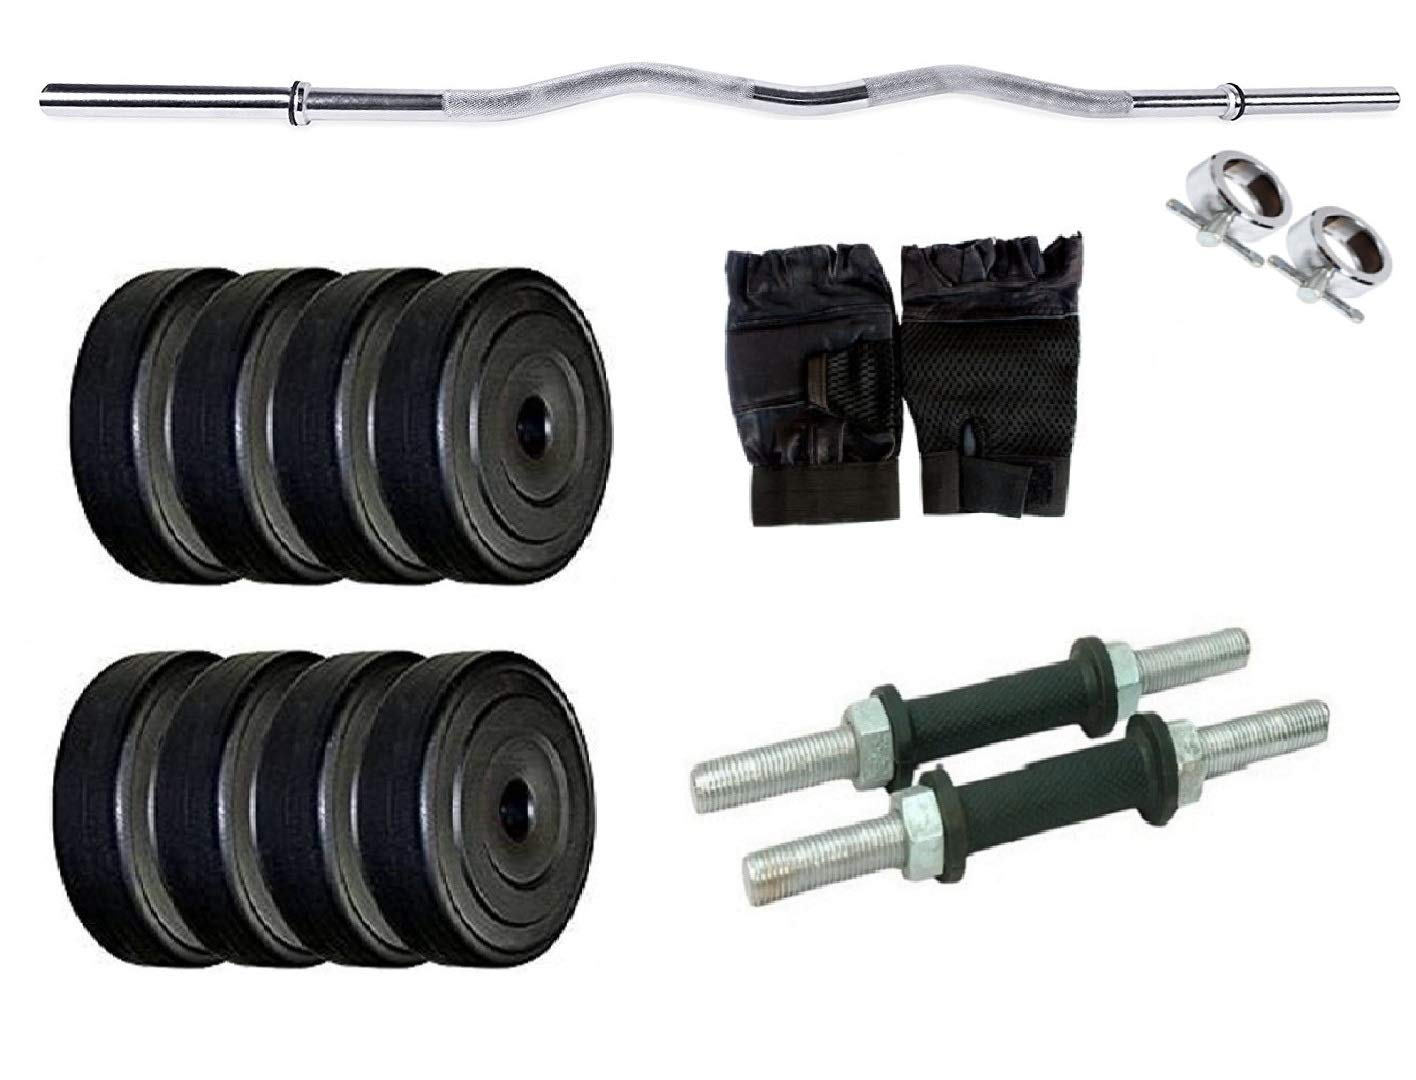 FACTO POWER Home Gym with Weight Plate Combination : 18 Kg. (2.5 Kg. X 4 = 10 Kg. + 2 Kg. X 4 = 8 Kg.), Dumbell Rods, Curl Rod, Rod Locks& Gym Gloves